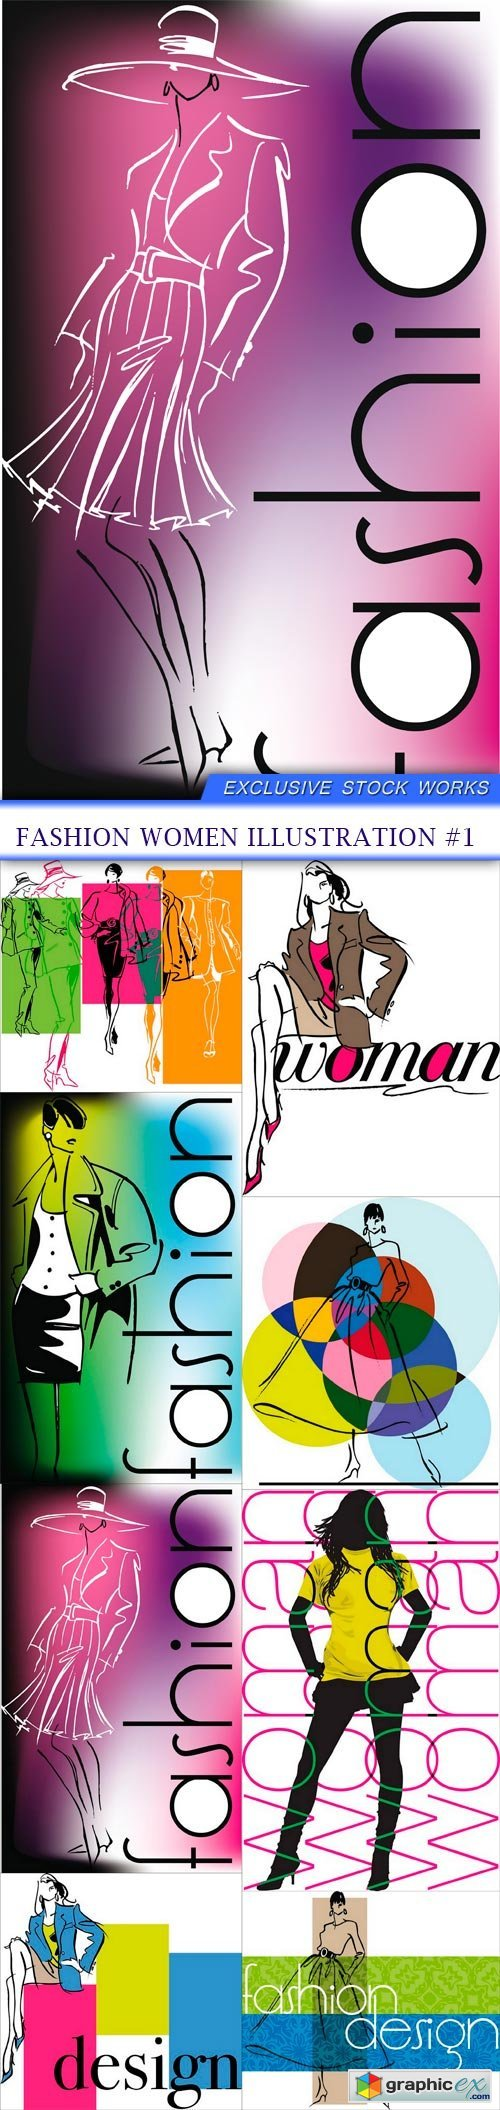 Fashion Women illustration #1 8X EPS